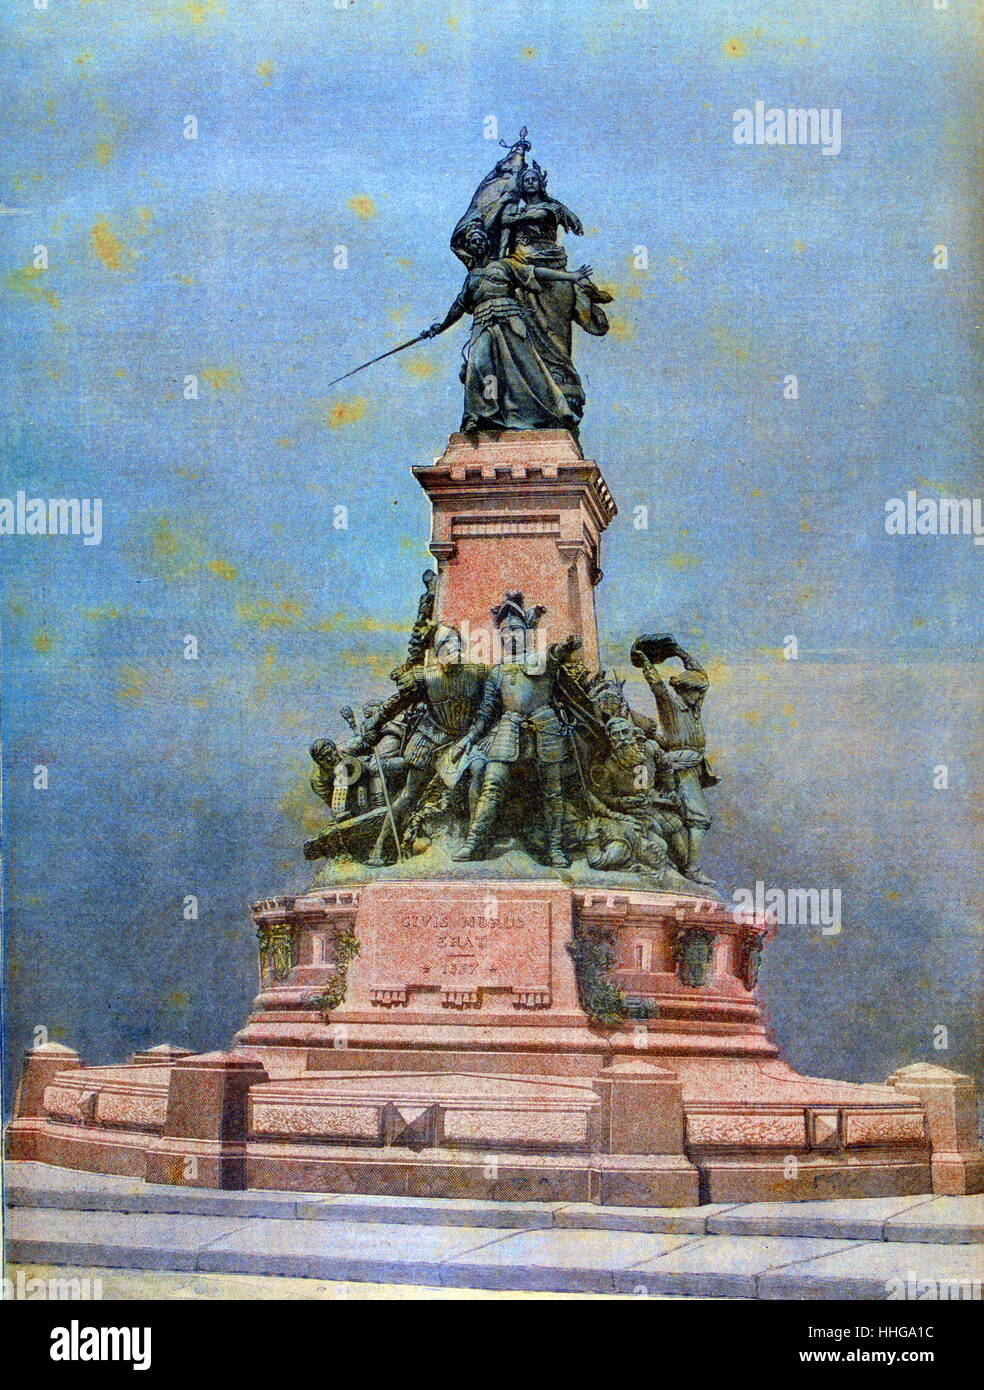 Monument to the Battle of Saint-Quentin of 1557 was fought during the Franco-Habsburg War (1551-1559). - Stock Image